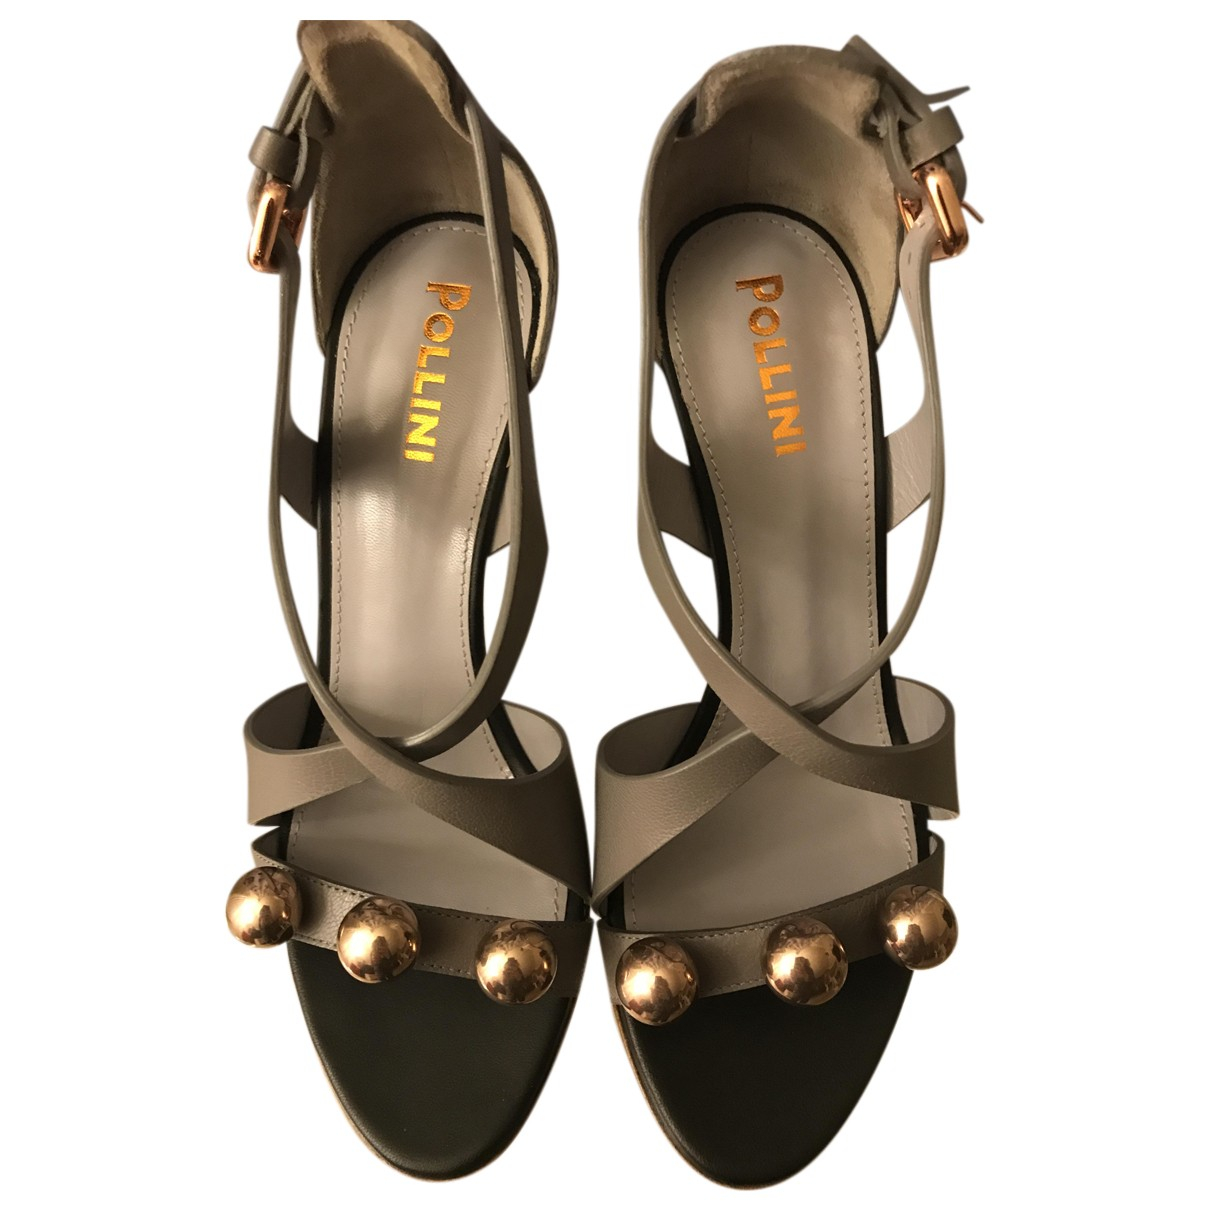 Pollini N Grey Leather Sandals for Women 36 IT